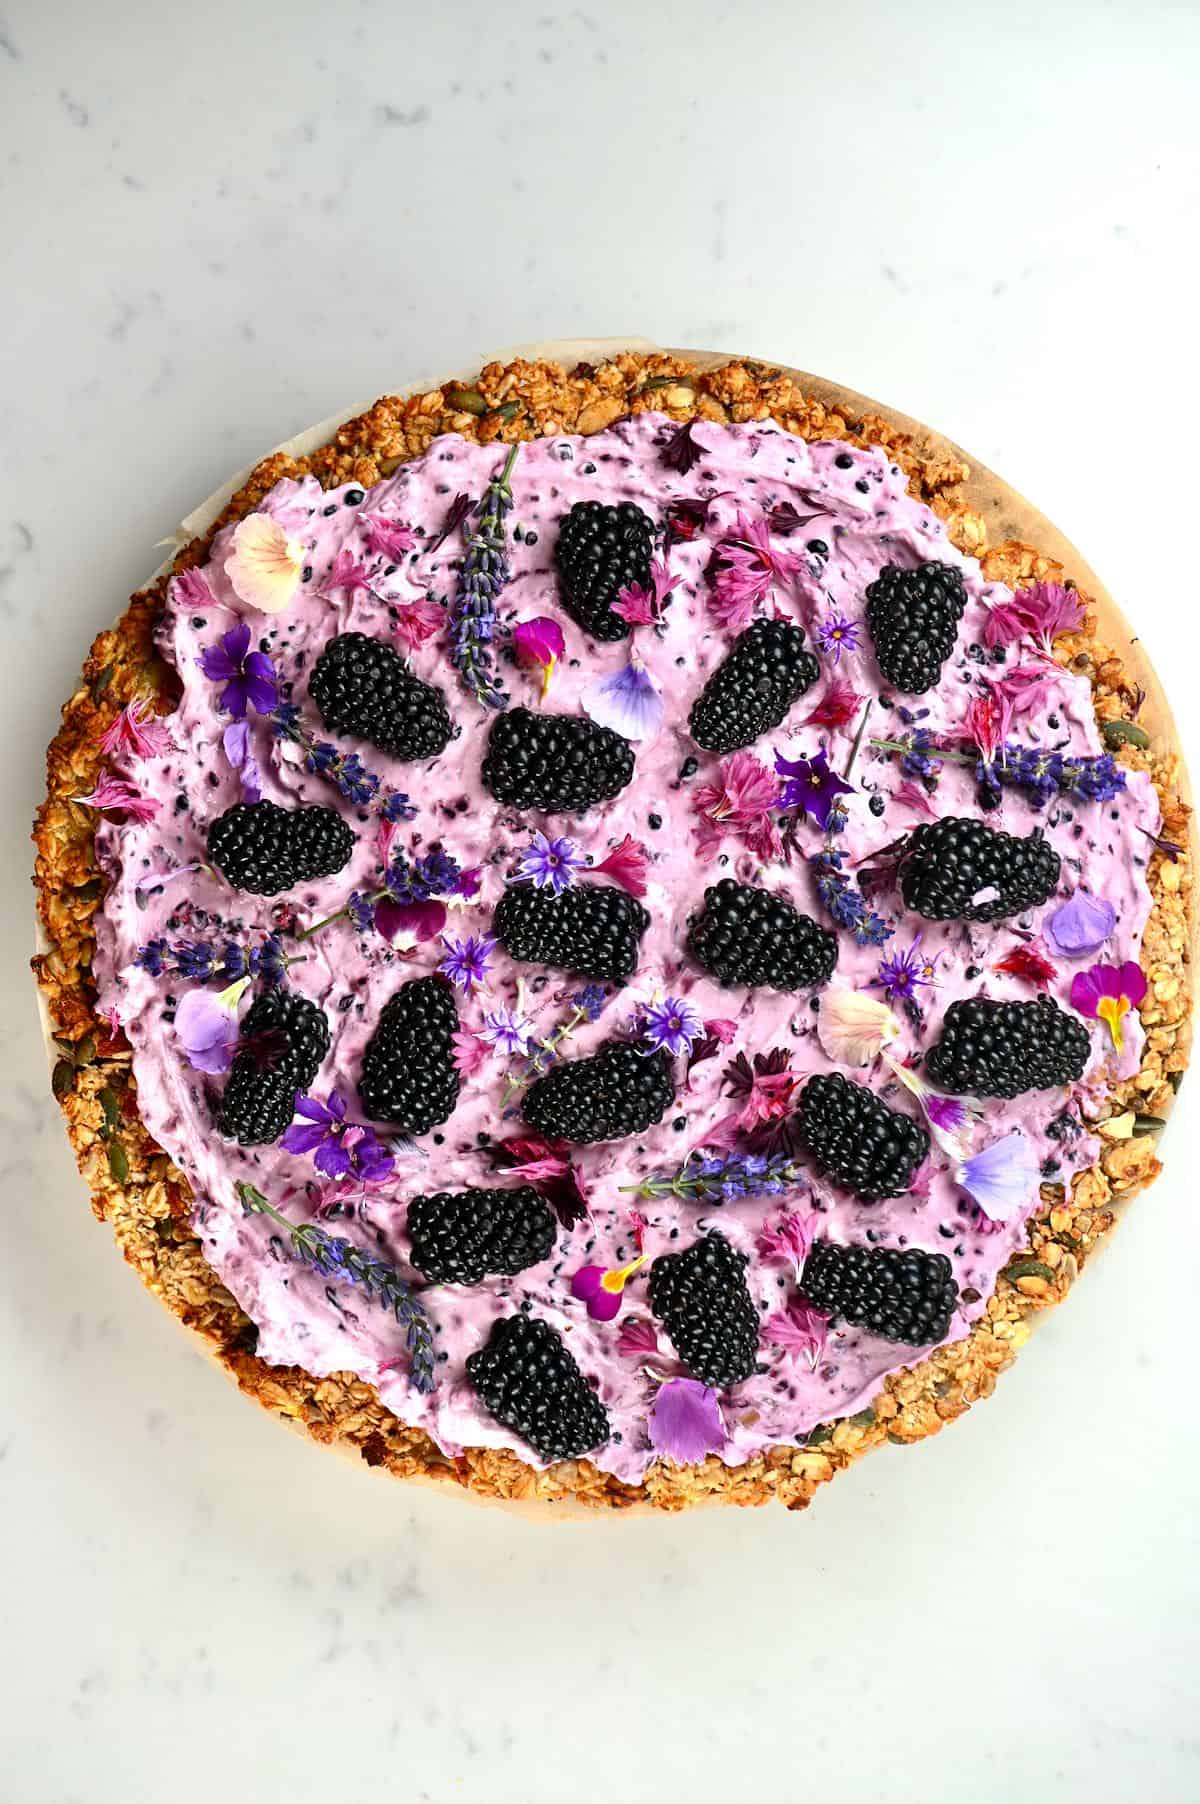 Top view of a Blackberry granola pizza